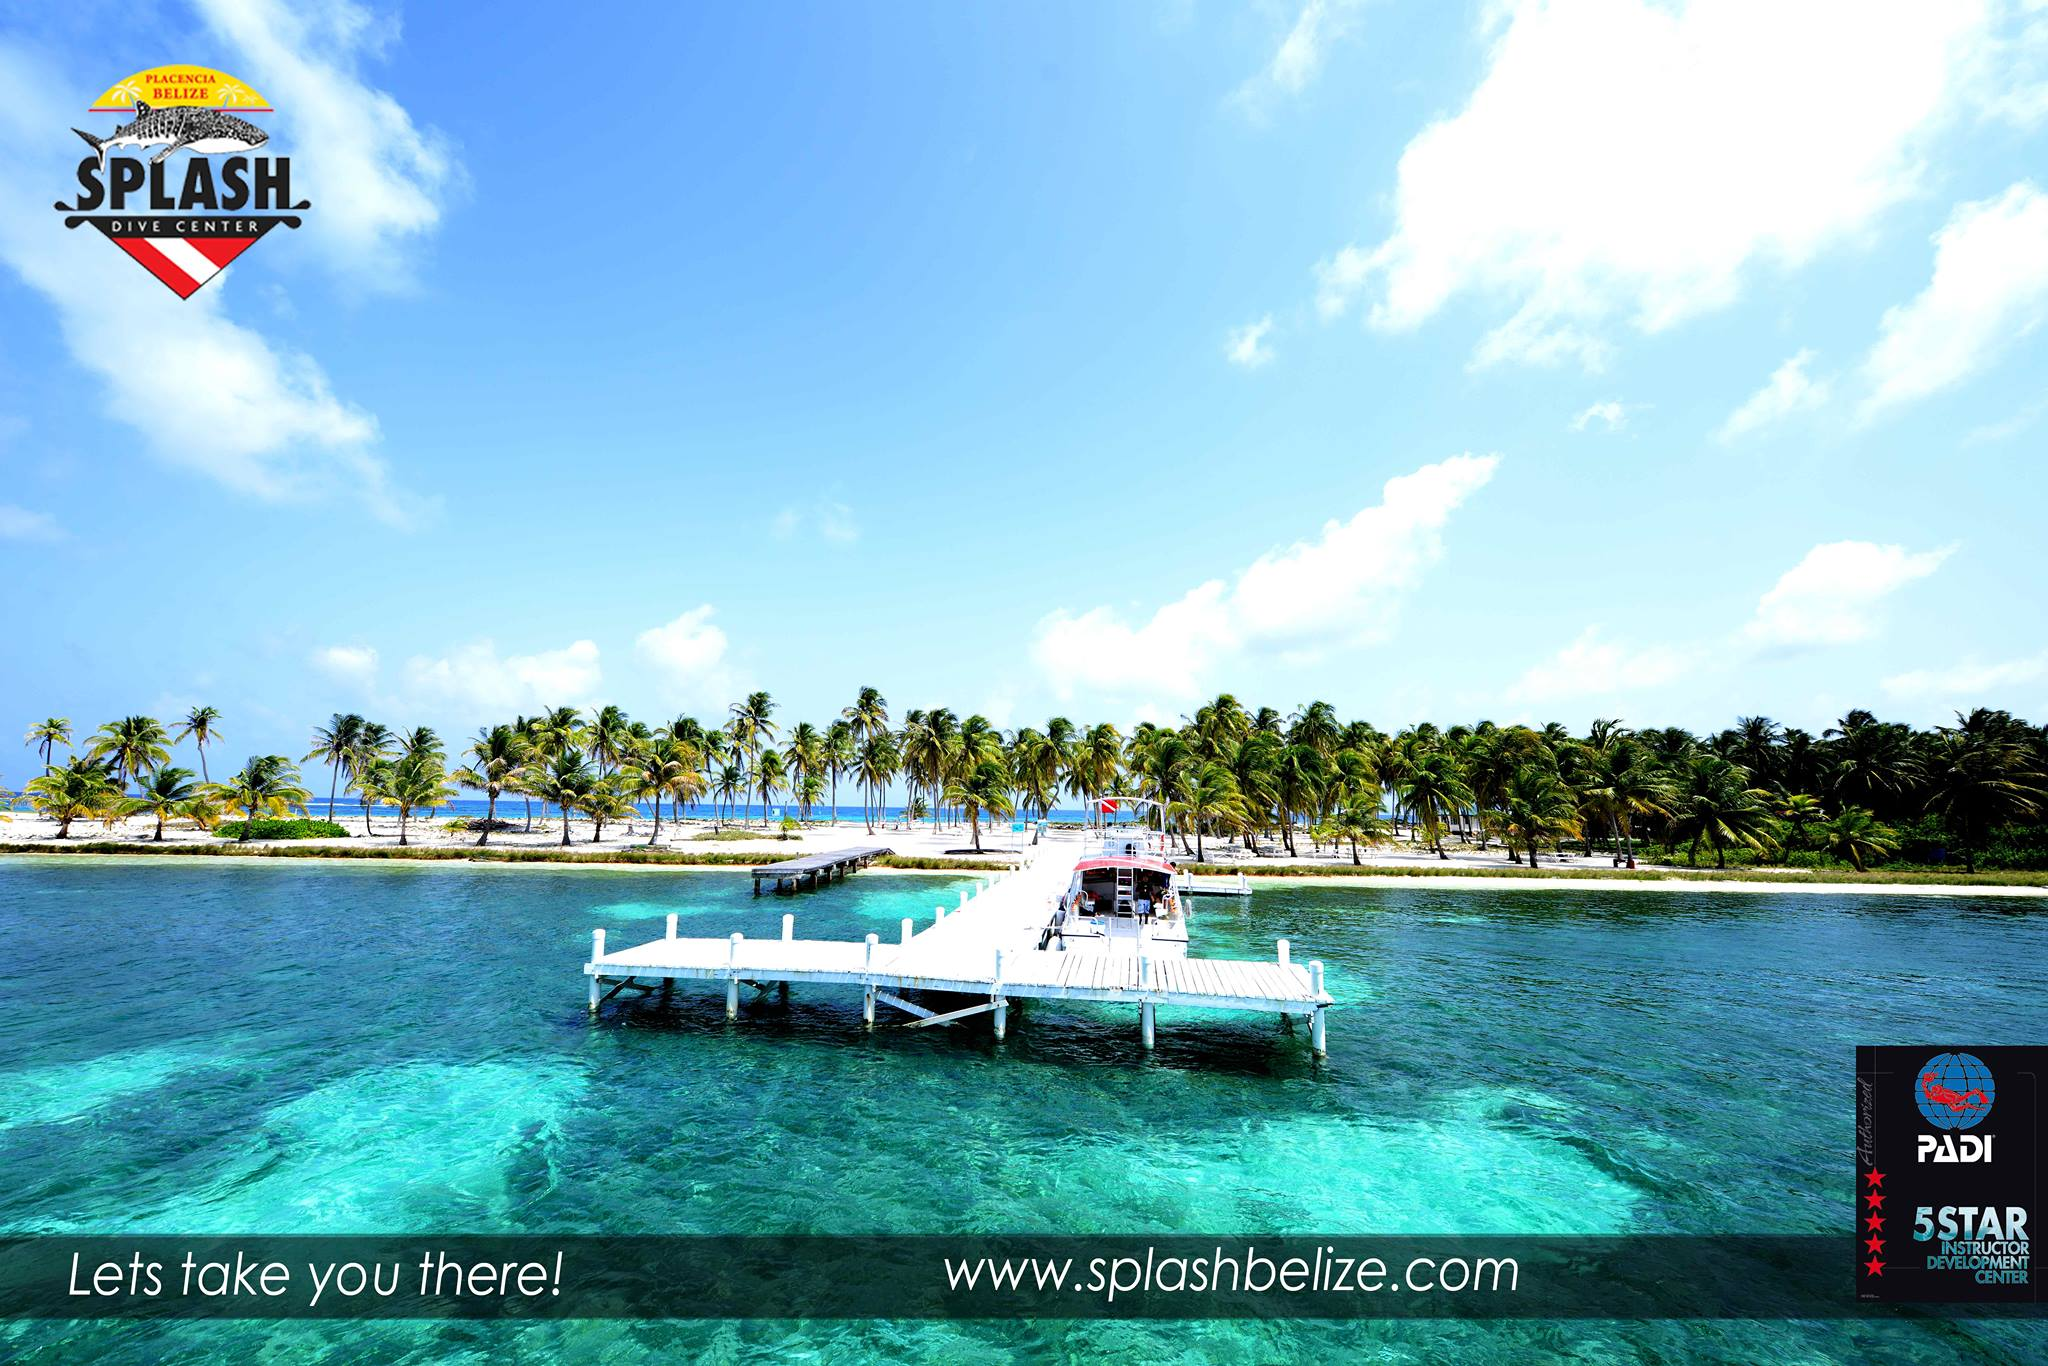 Experience the unforgettable| Experience Belize!